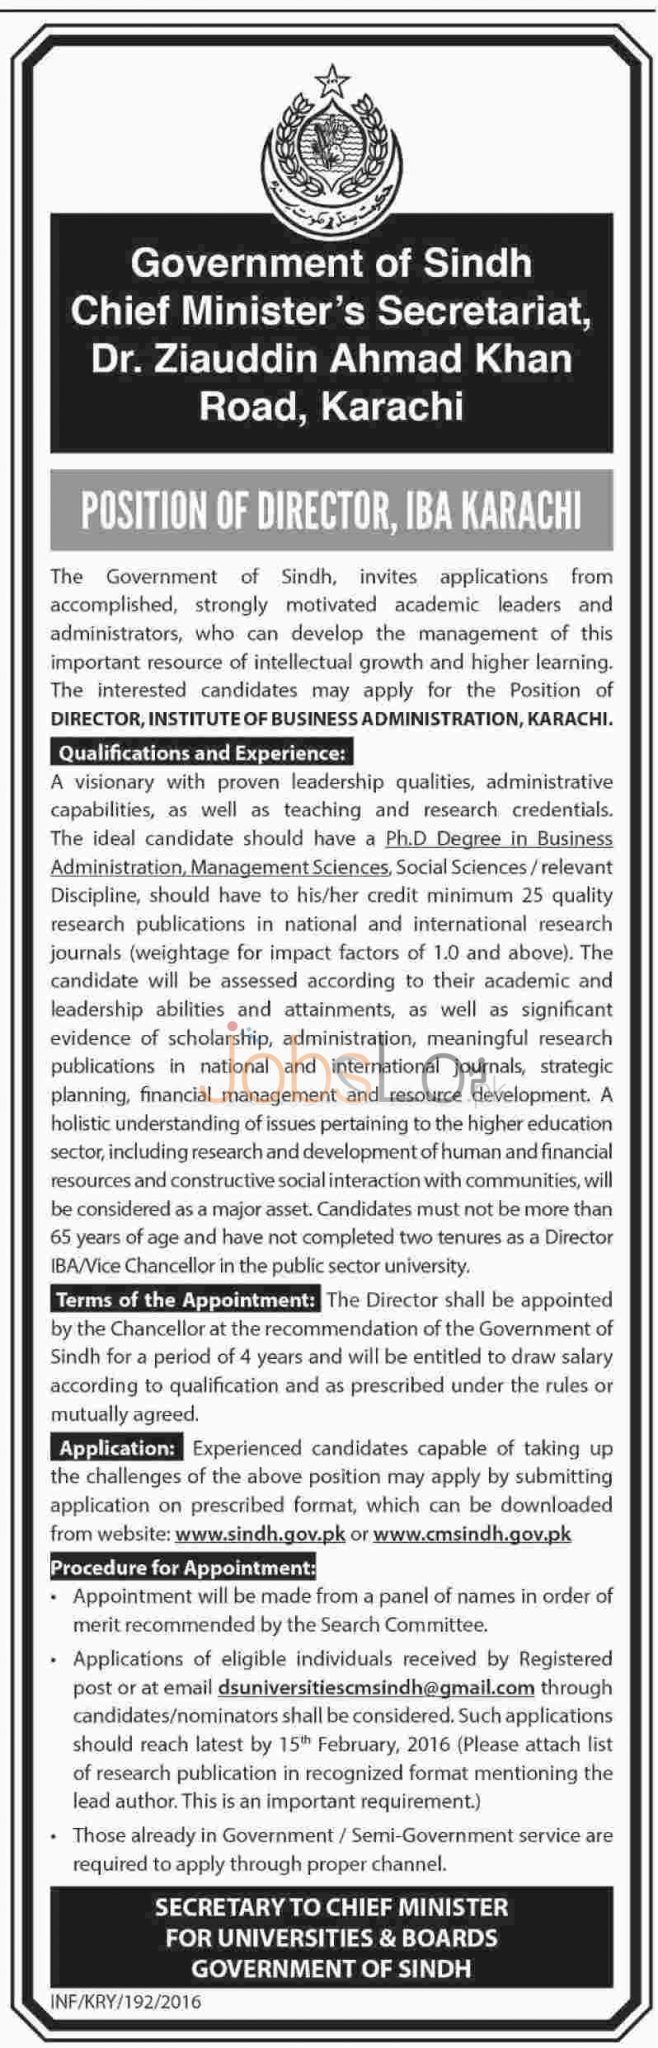 University and Board of Govt of Sindh  2016 Jobs for Director in IBA Karachi